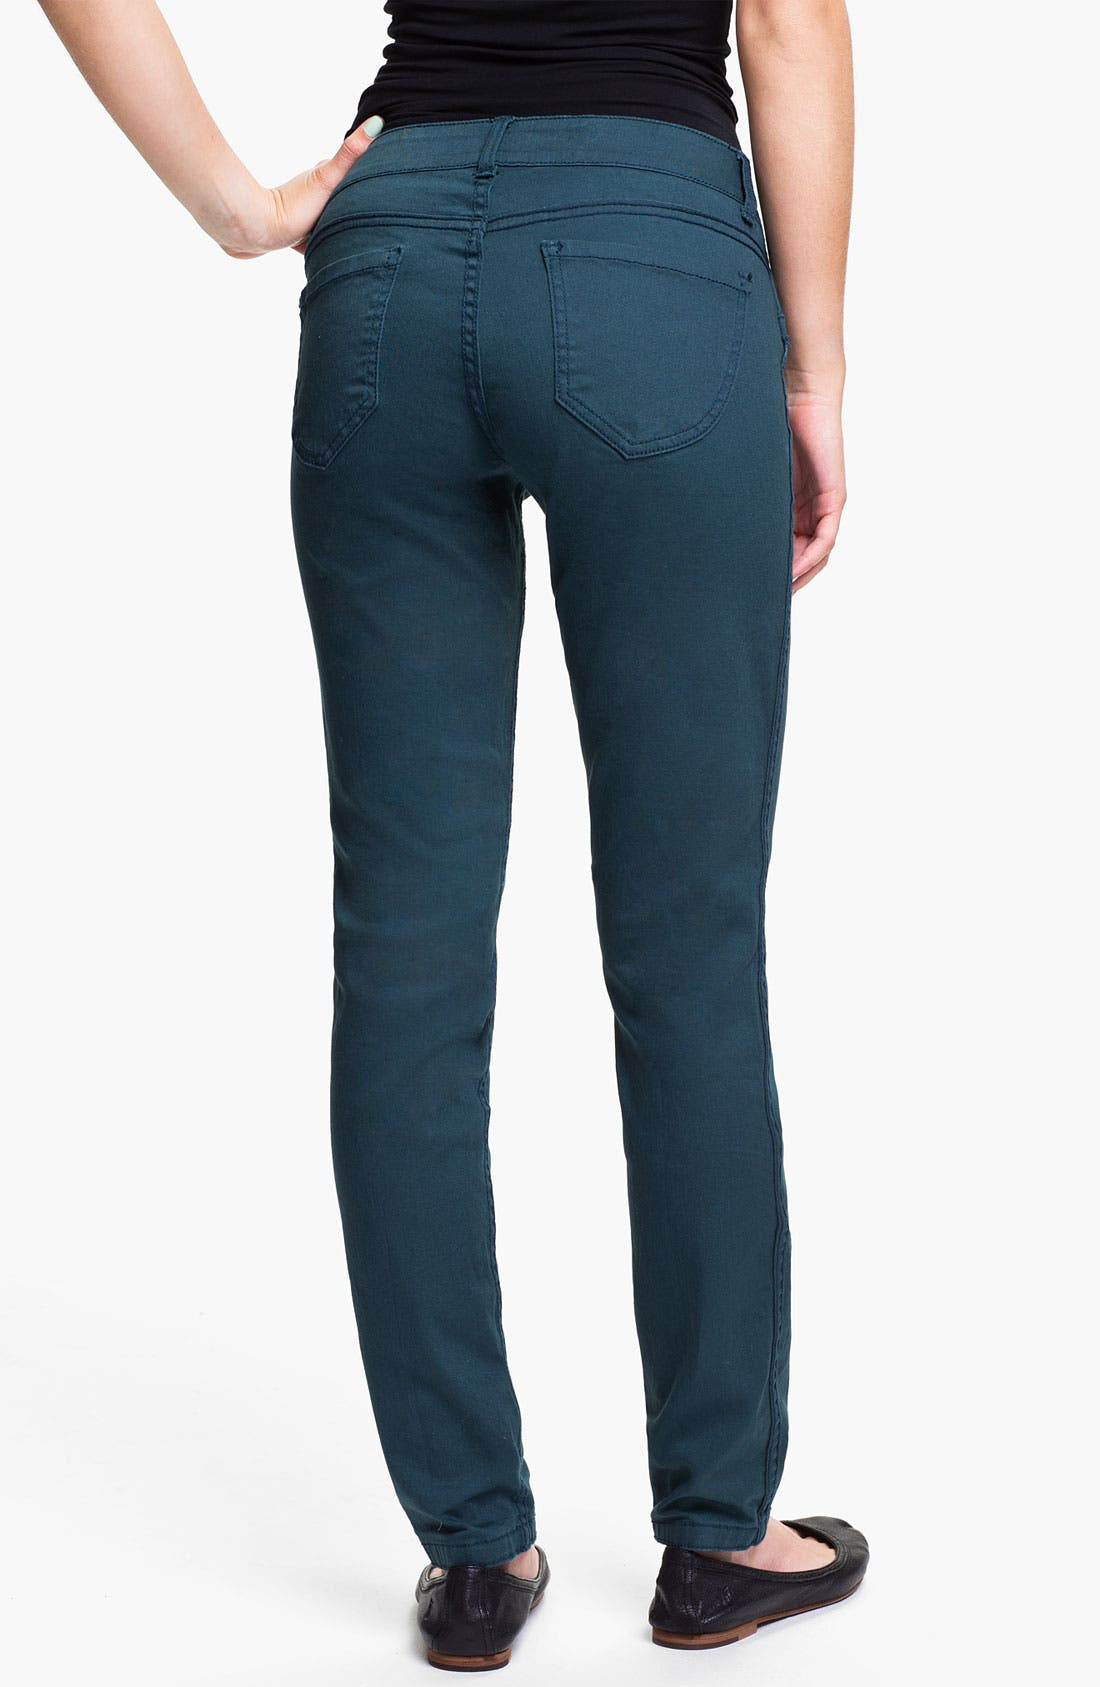 Alternate Image 1 Selected - Jolt Reversible Skinny Jeans (Juniors)